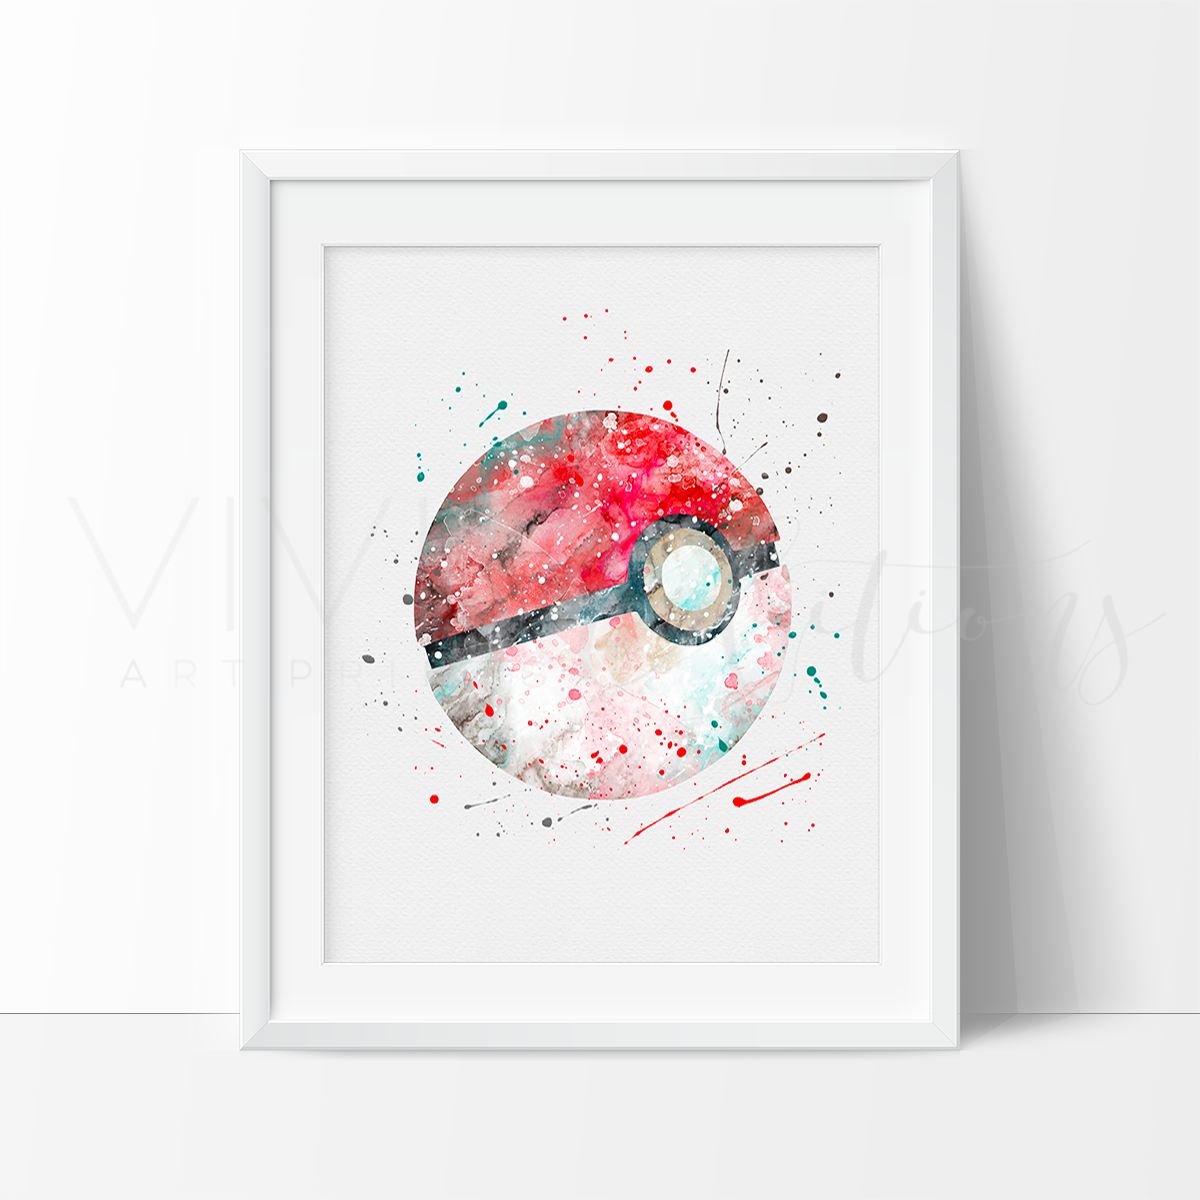 Pokemon Wall Decor pokemon go pokeball watercolor art print wall decor - vivideditions